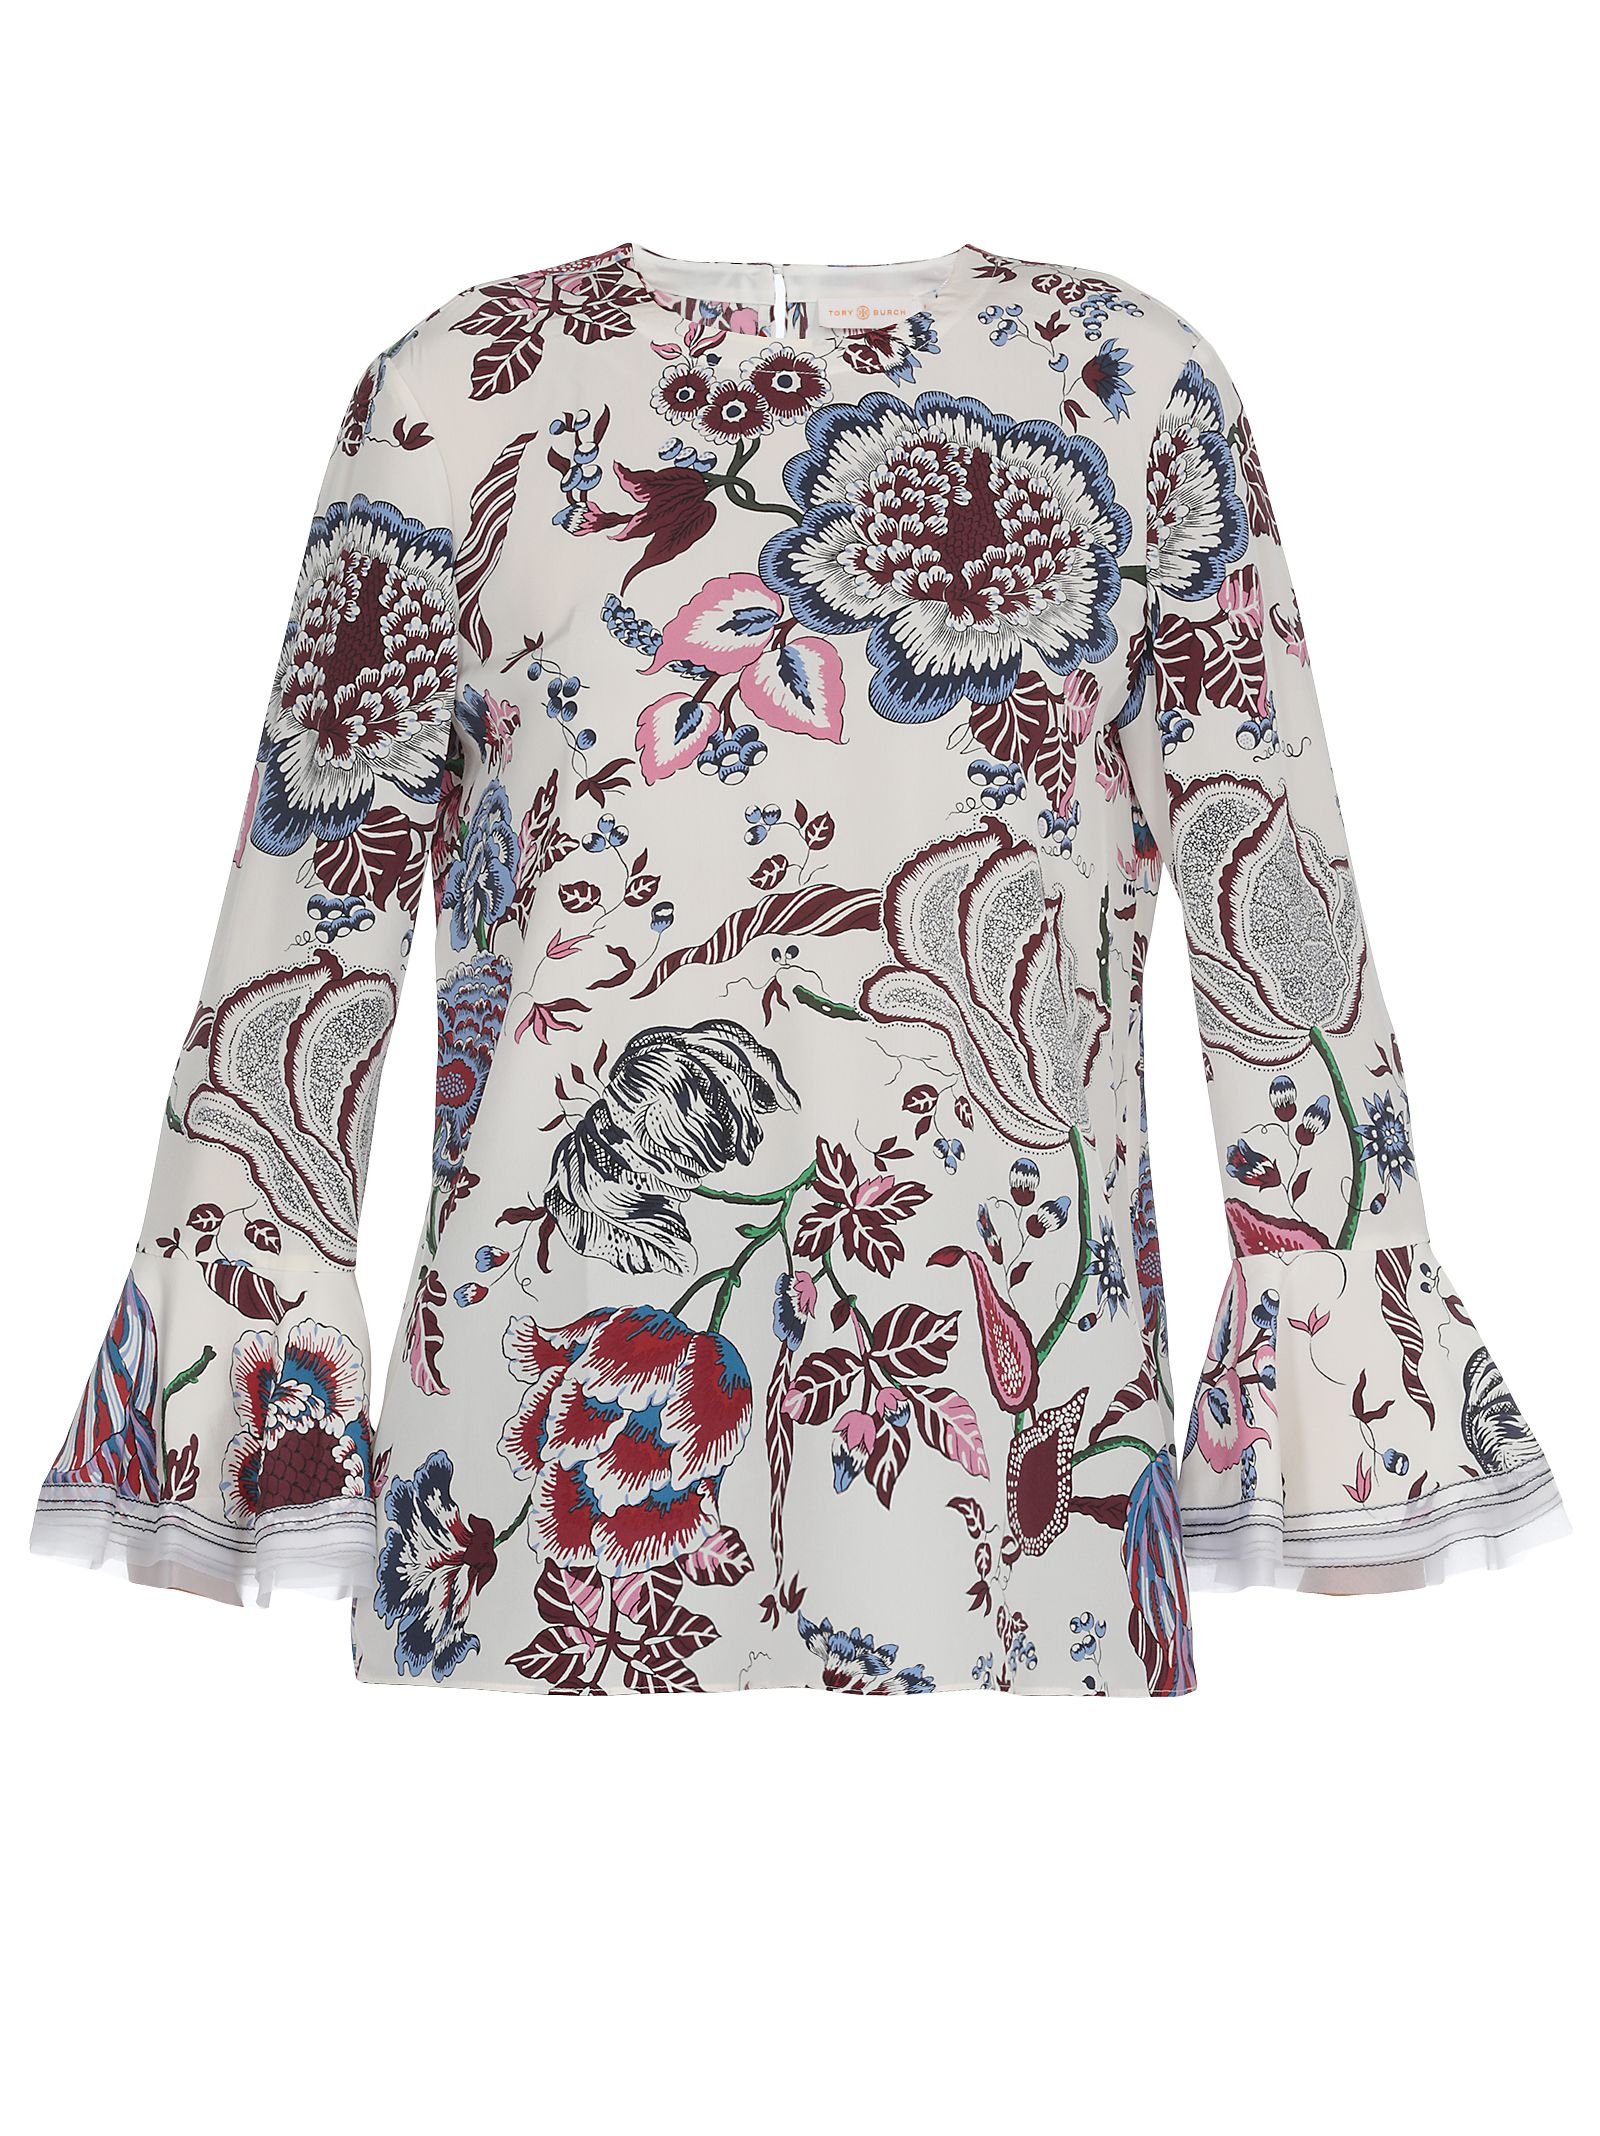 Tory Burch Happy Times Ruffle Sleeves Blouse